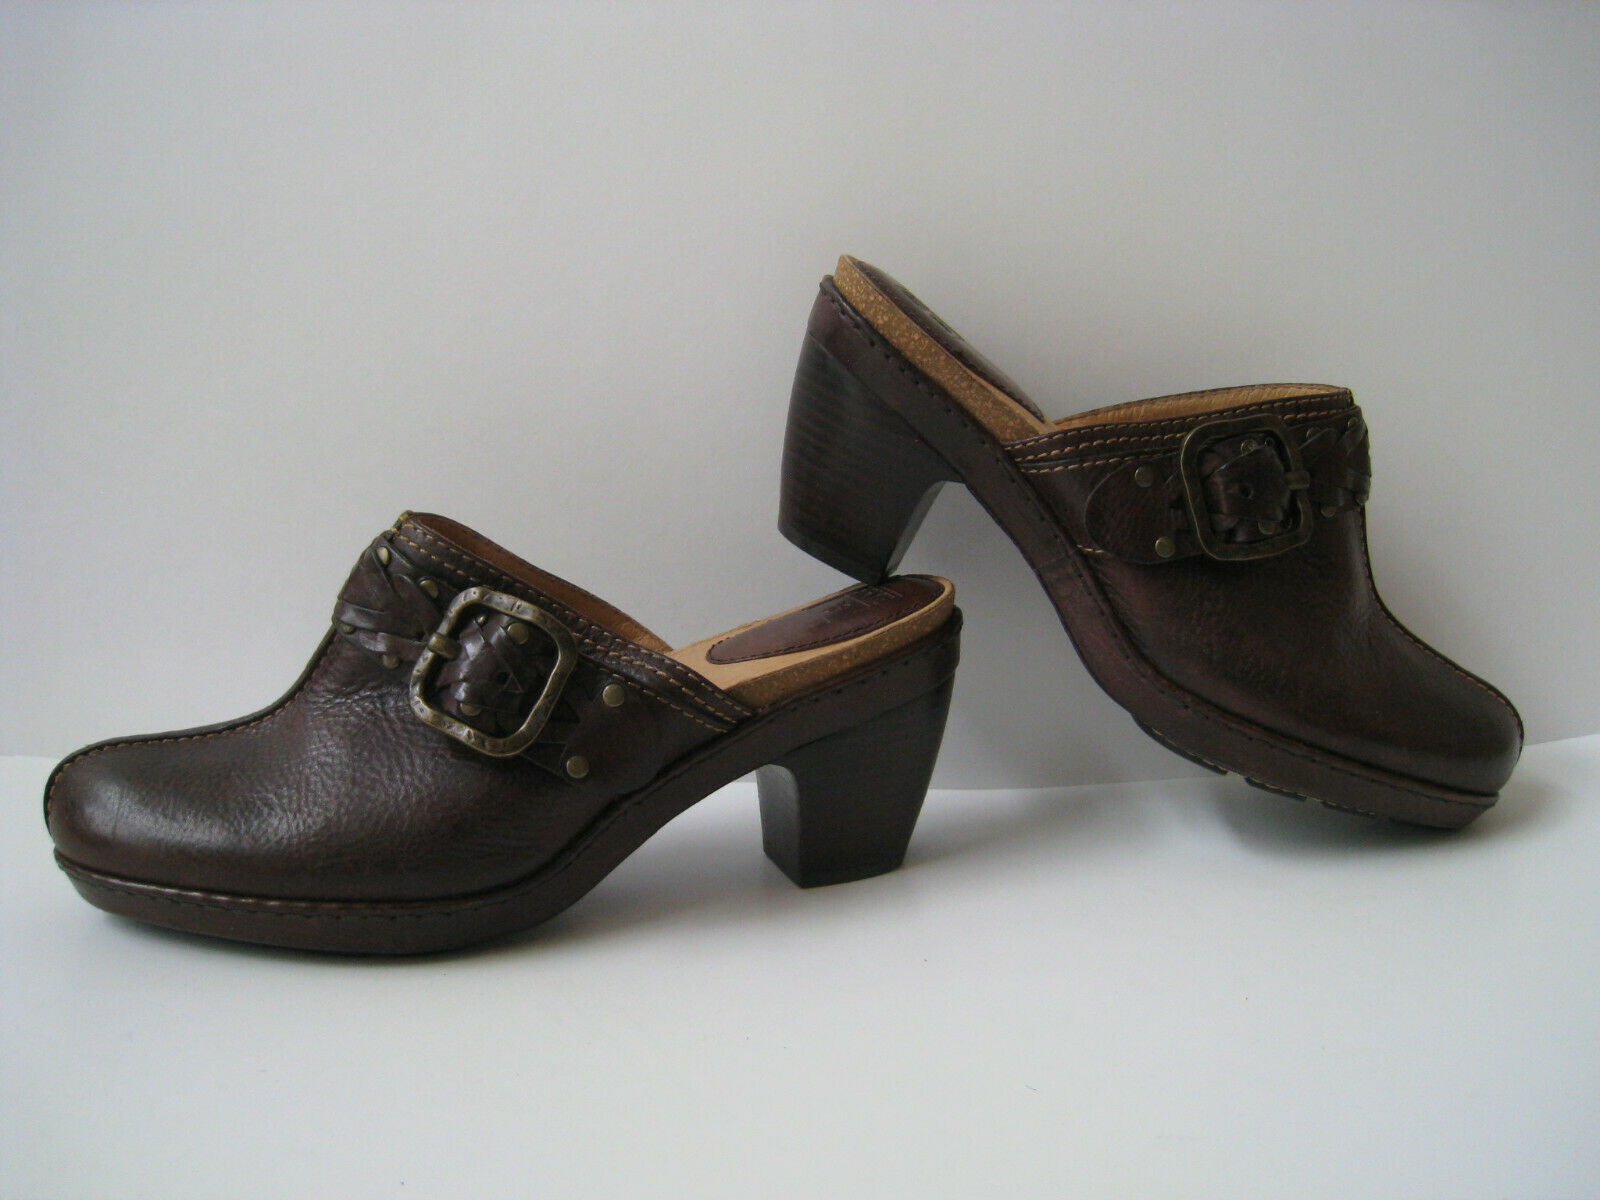 FRYE CANDICE WOVEN BROWN LEATHER STUDDED CORK FOOTBED CLOGS 3.5  HEEL US 11 HOT